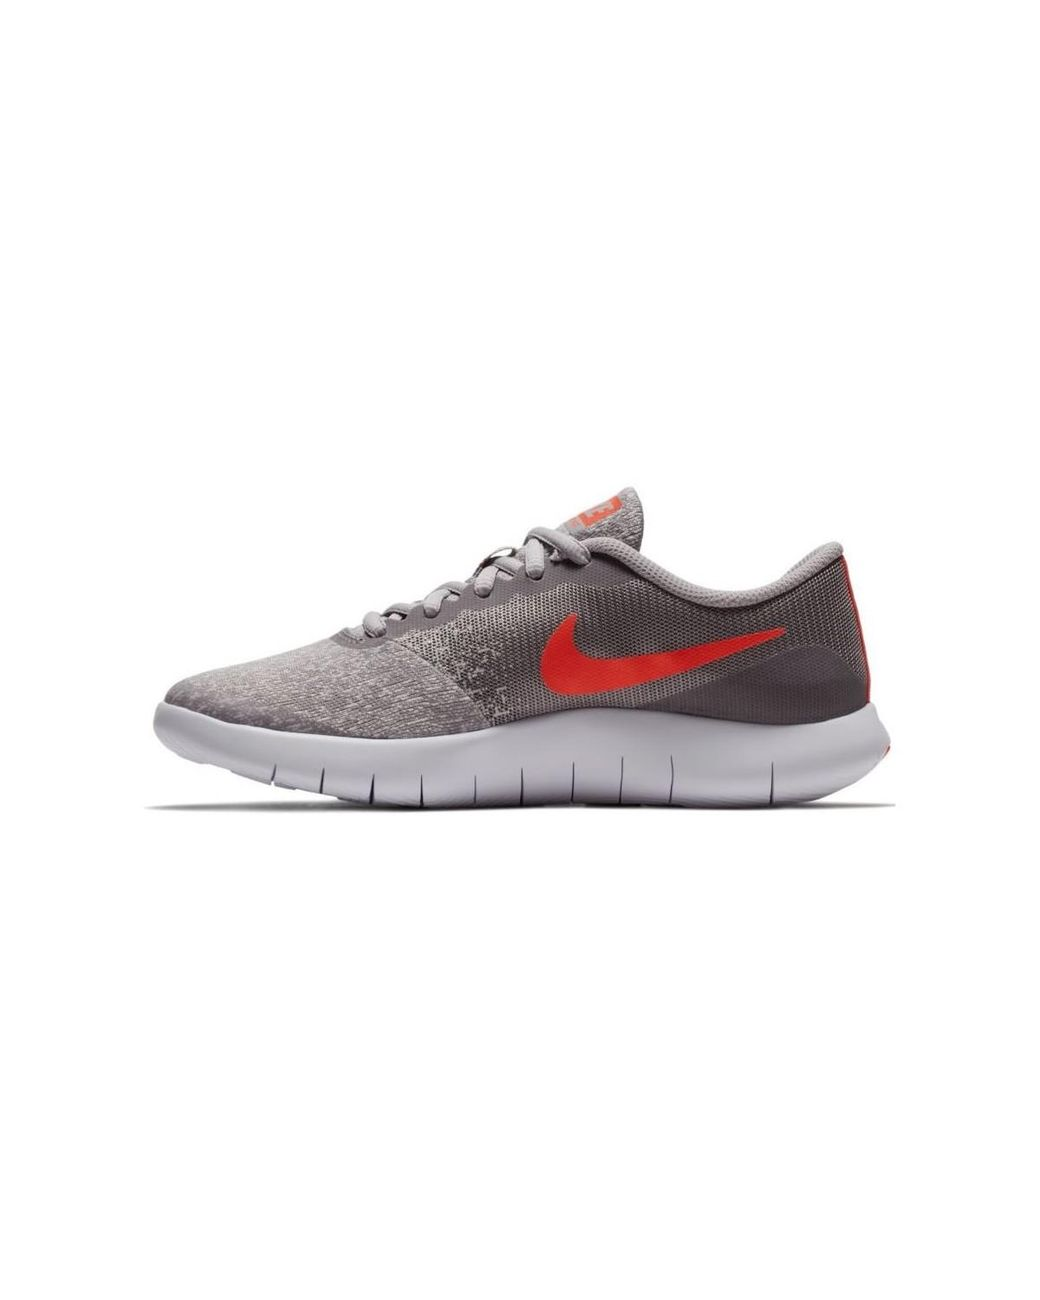 a57db90a09391 Nike Boys  Flex Contact (gs) Running Shoe 917932 006 Women s Shoes  (trainers) In Grey in Gray - Lyst